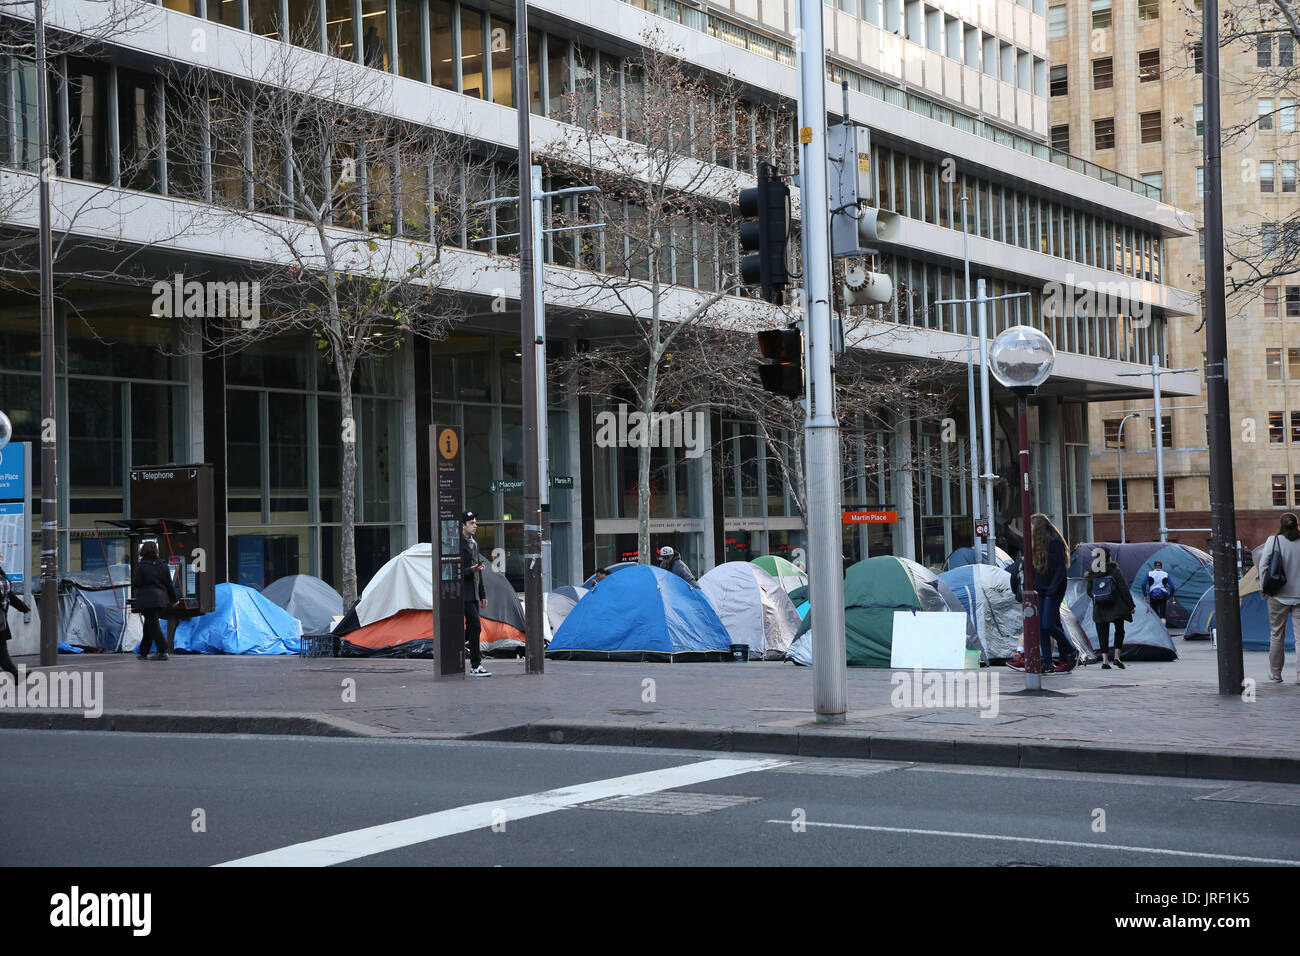 Sydney Australia. 4 August 2017. More tents have been erected at the top end of Martin Place as the homeless c& now occupies almost the whole area ... & Sydney Australia. 4 August 2017. More tents have been erected at ...